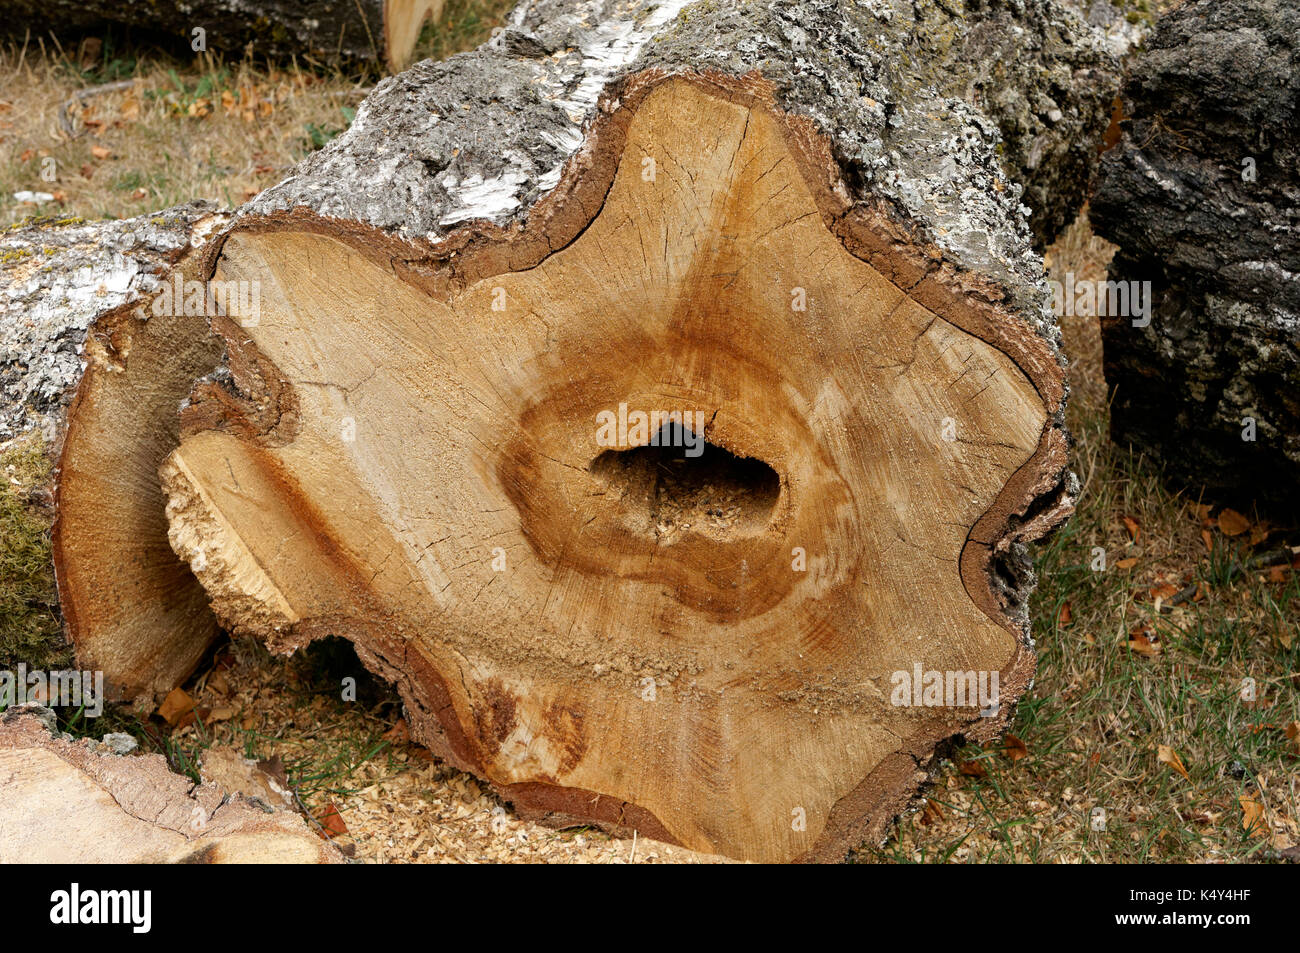 Cross-section of trunk of a European white birch Betula pendula tree showing heart- rot fungal disease, Vancouver, BC, Canada - Stock Image